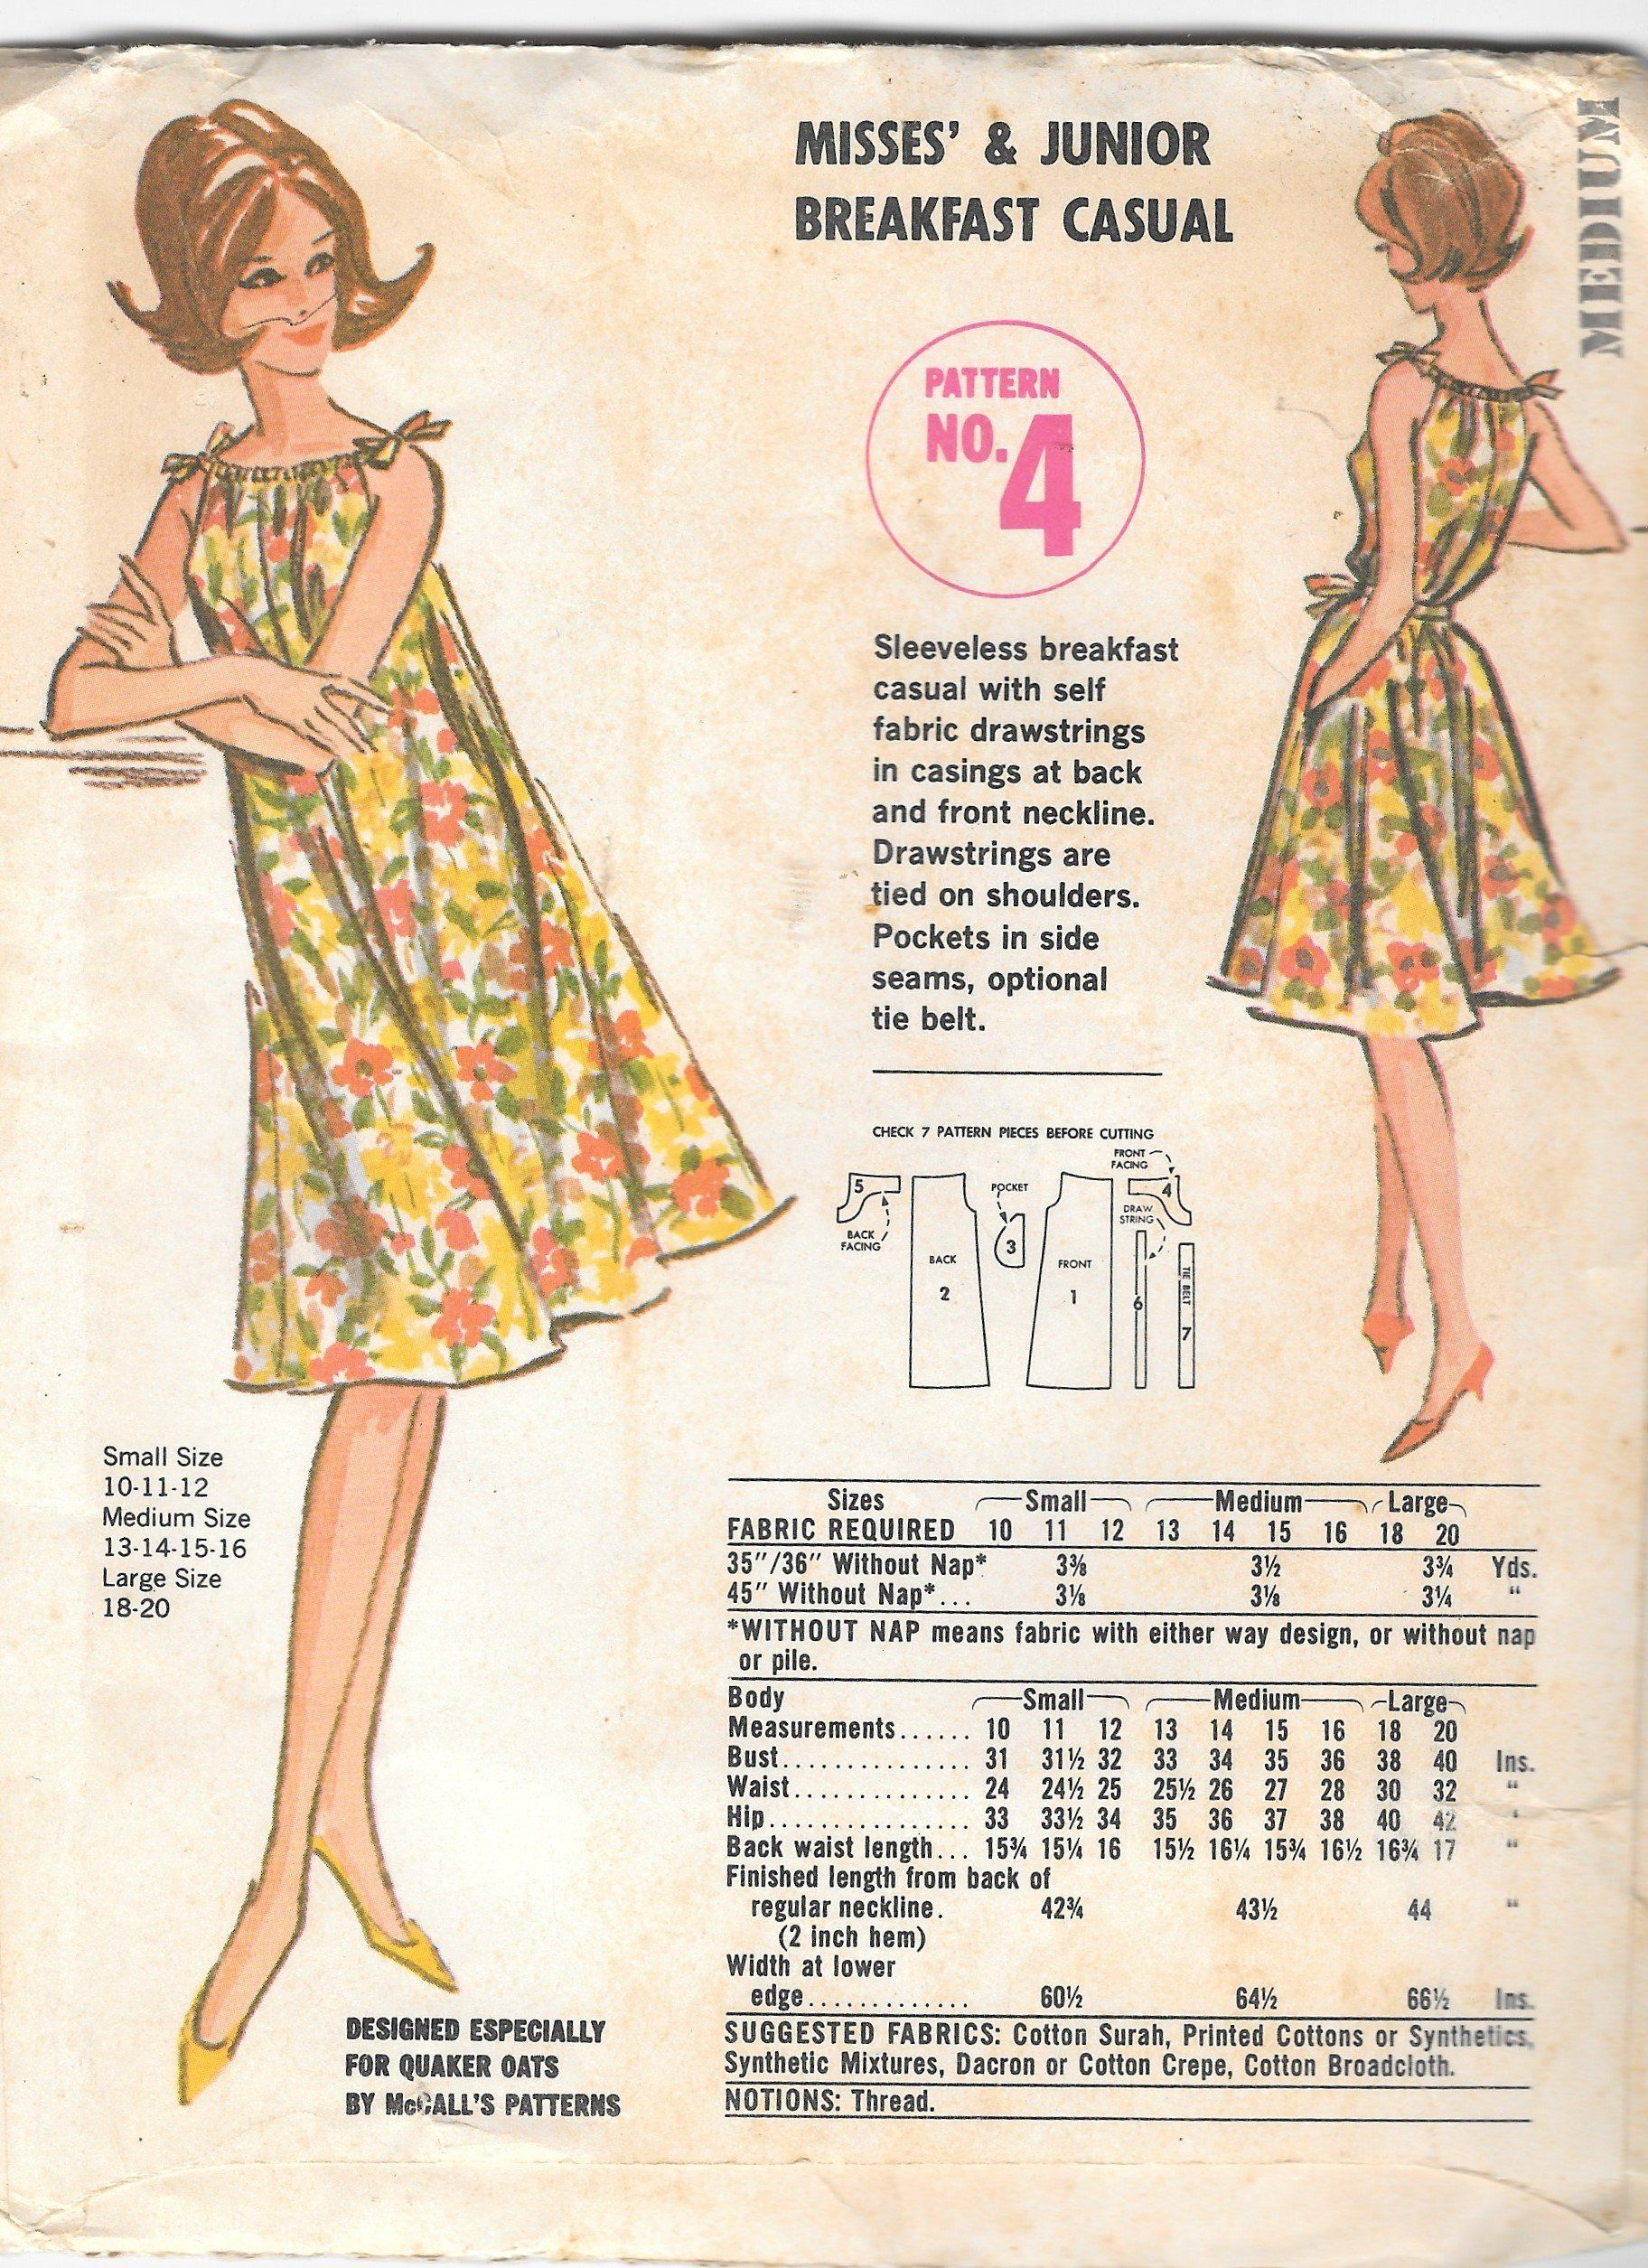 Vtg Mccalls Pattern 4 Misses Mumu Type Dress Breakfast Casual